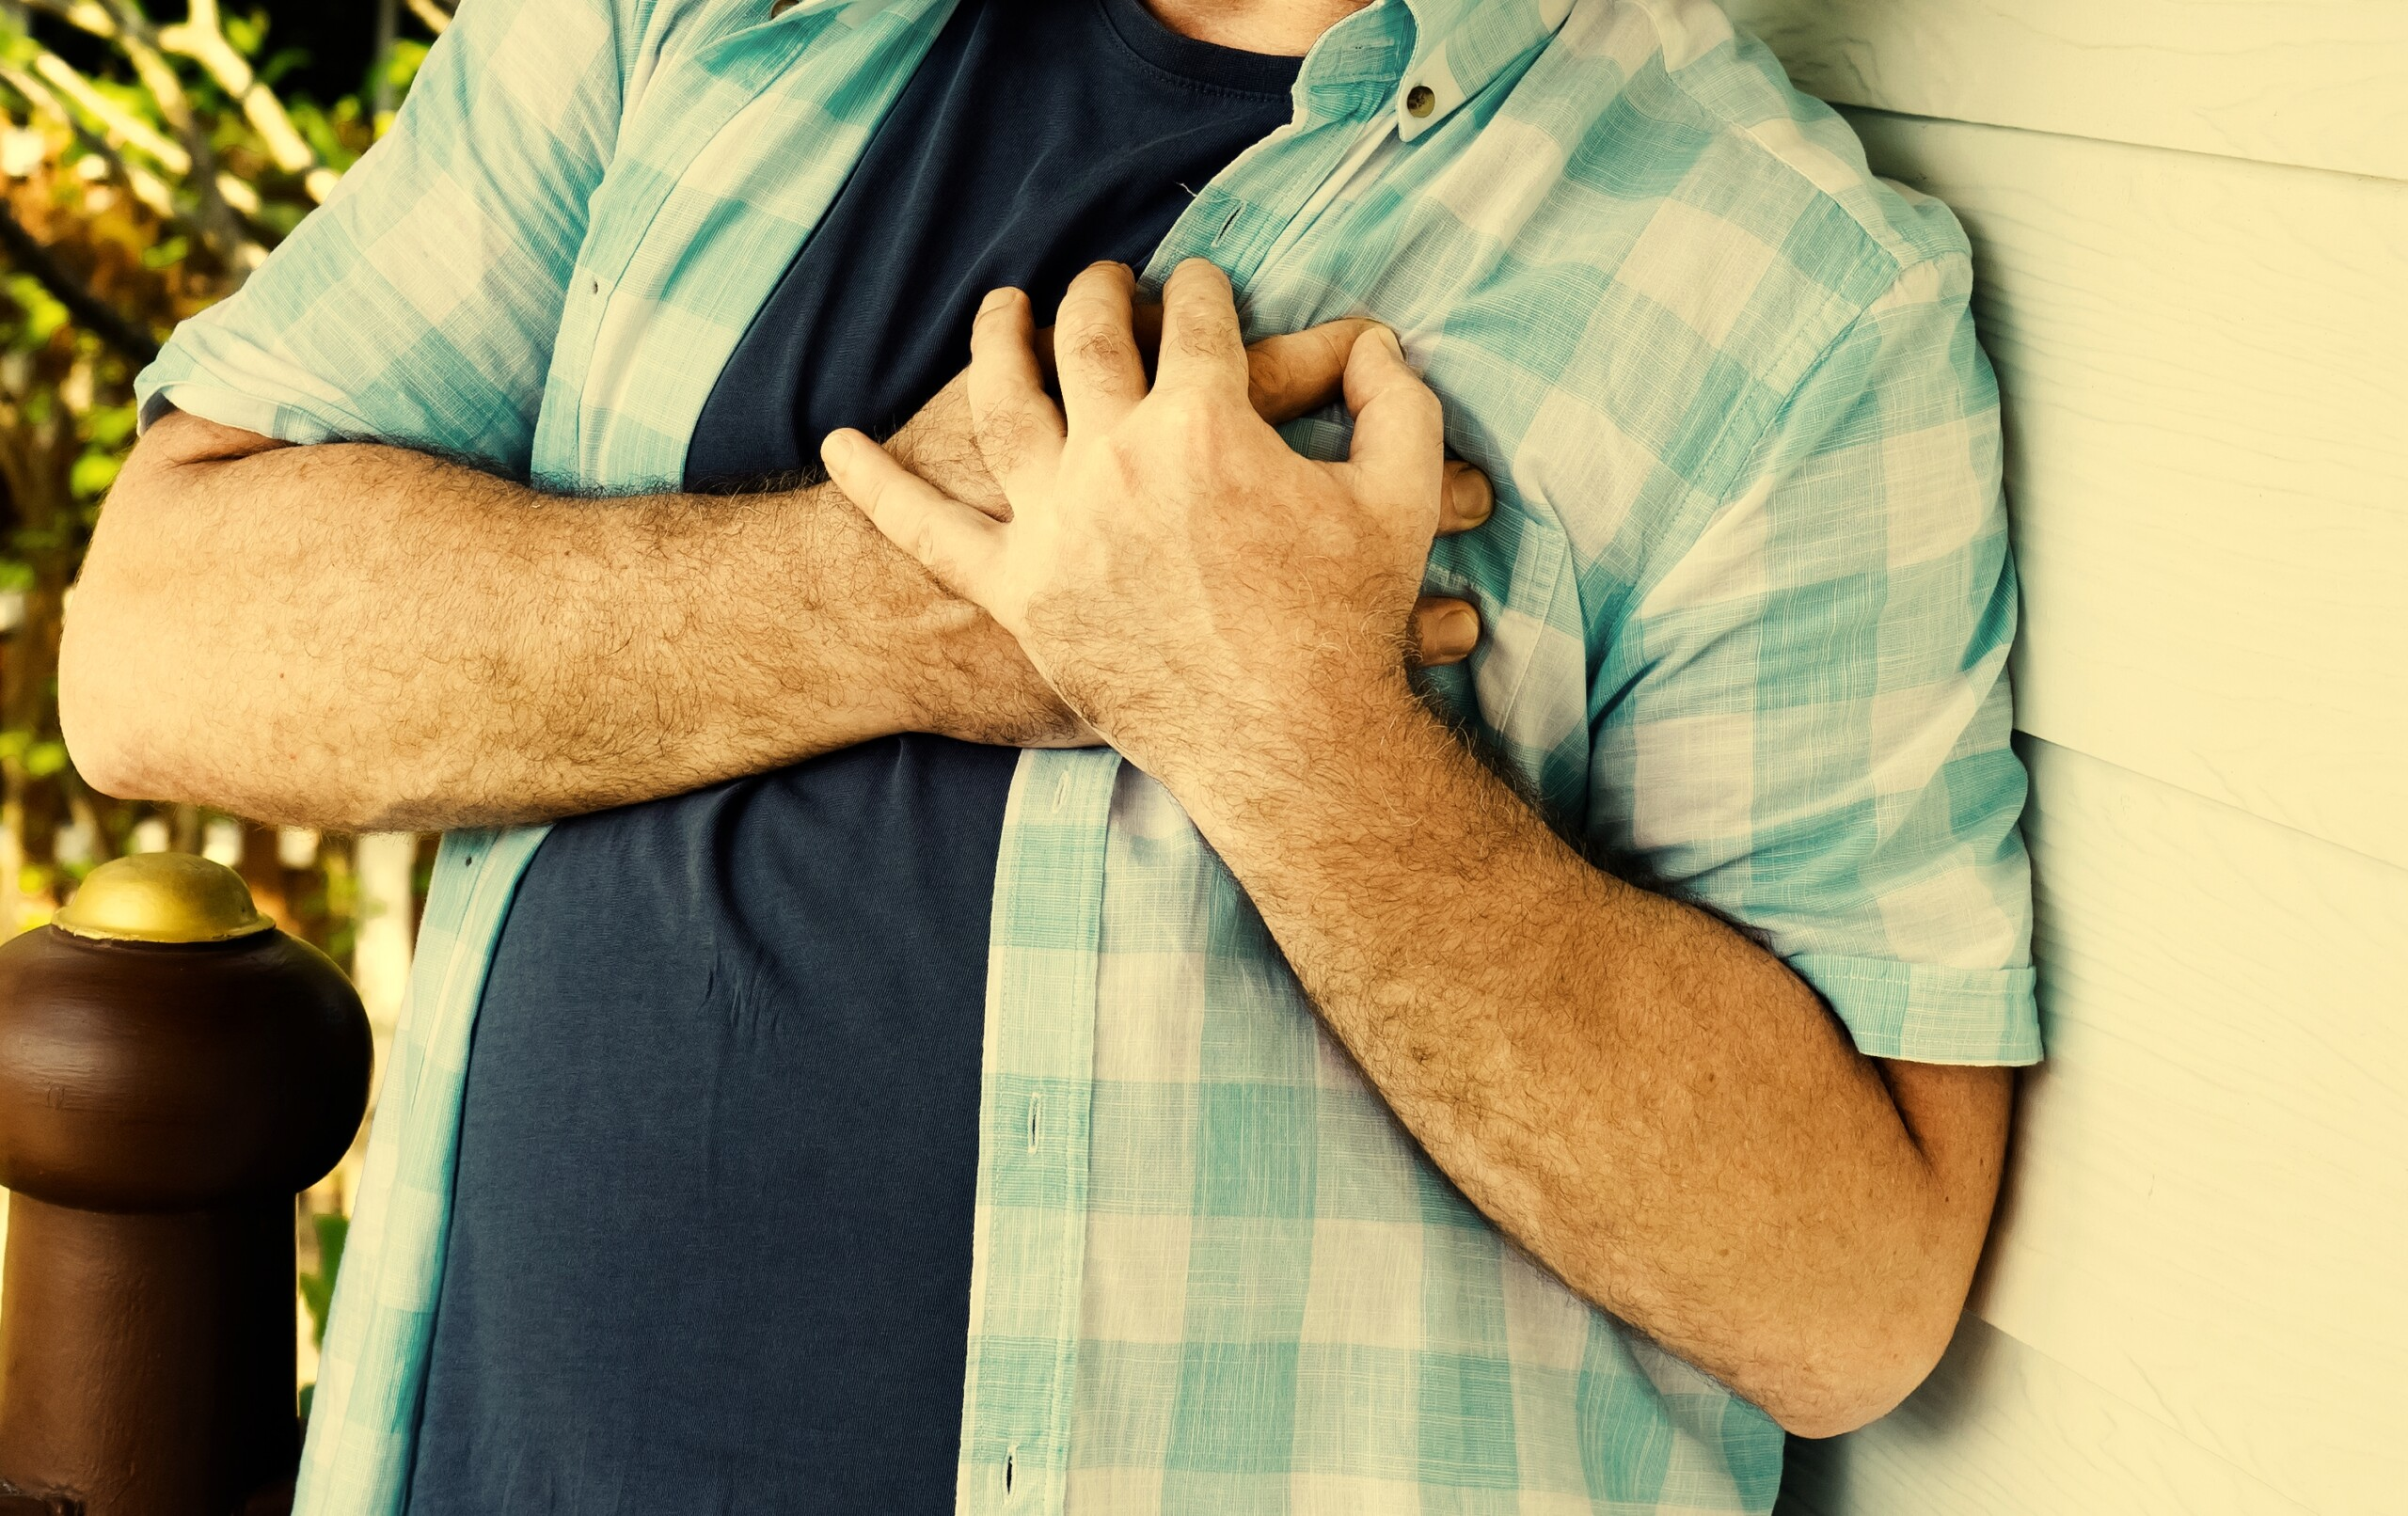 Can an Acoustic Neuroma Cause Heart Palpitations?